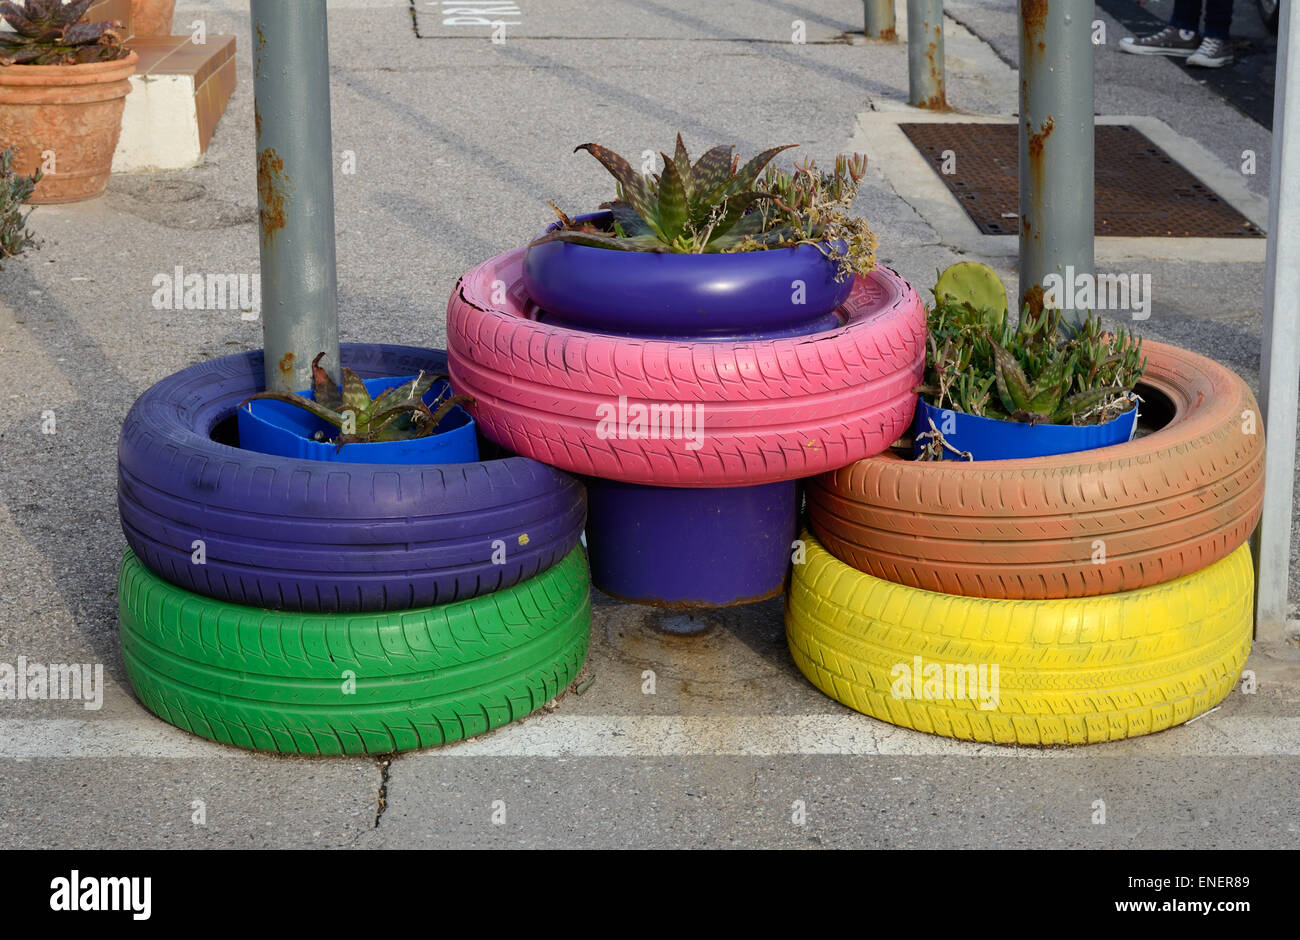 garden planters recycled with Stock Photo Painted Tires Or Tyre Planters Or Colorful Rubber Plant Pots 82074841 on Ingenious Ways To Recycle Glass Bottles additionally Retriever 24 Inch Weathervane in addition Stock Photo Painted Tires Or Tyre Planters Or Colorful Rubber Plant Pots 82074841 together with 10 Creative Flower Garden Crafts Made Reyccled Materials likewise 40 Unique Fun Container Garden Ideas 2.